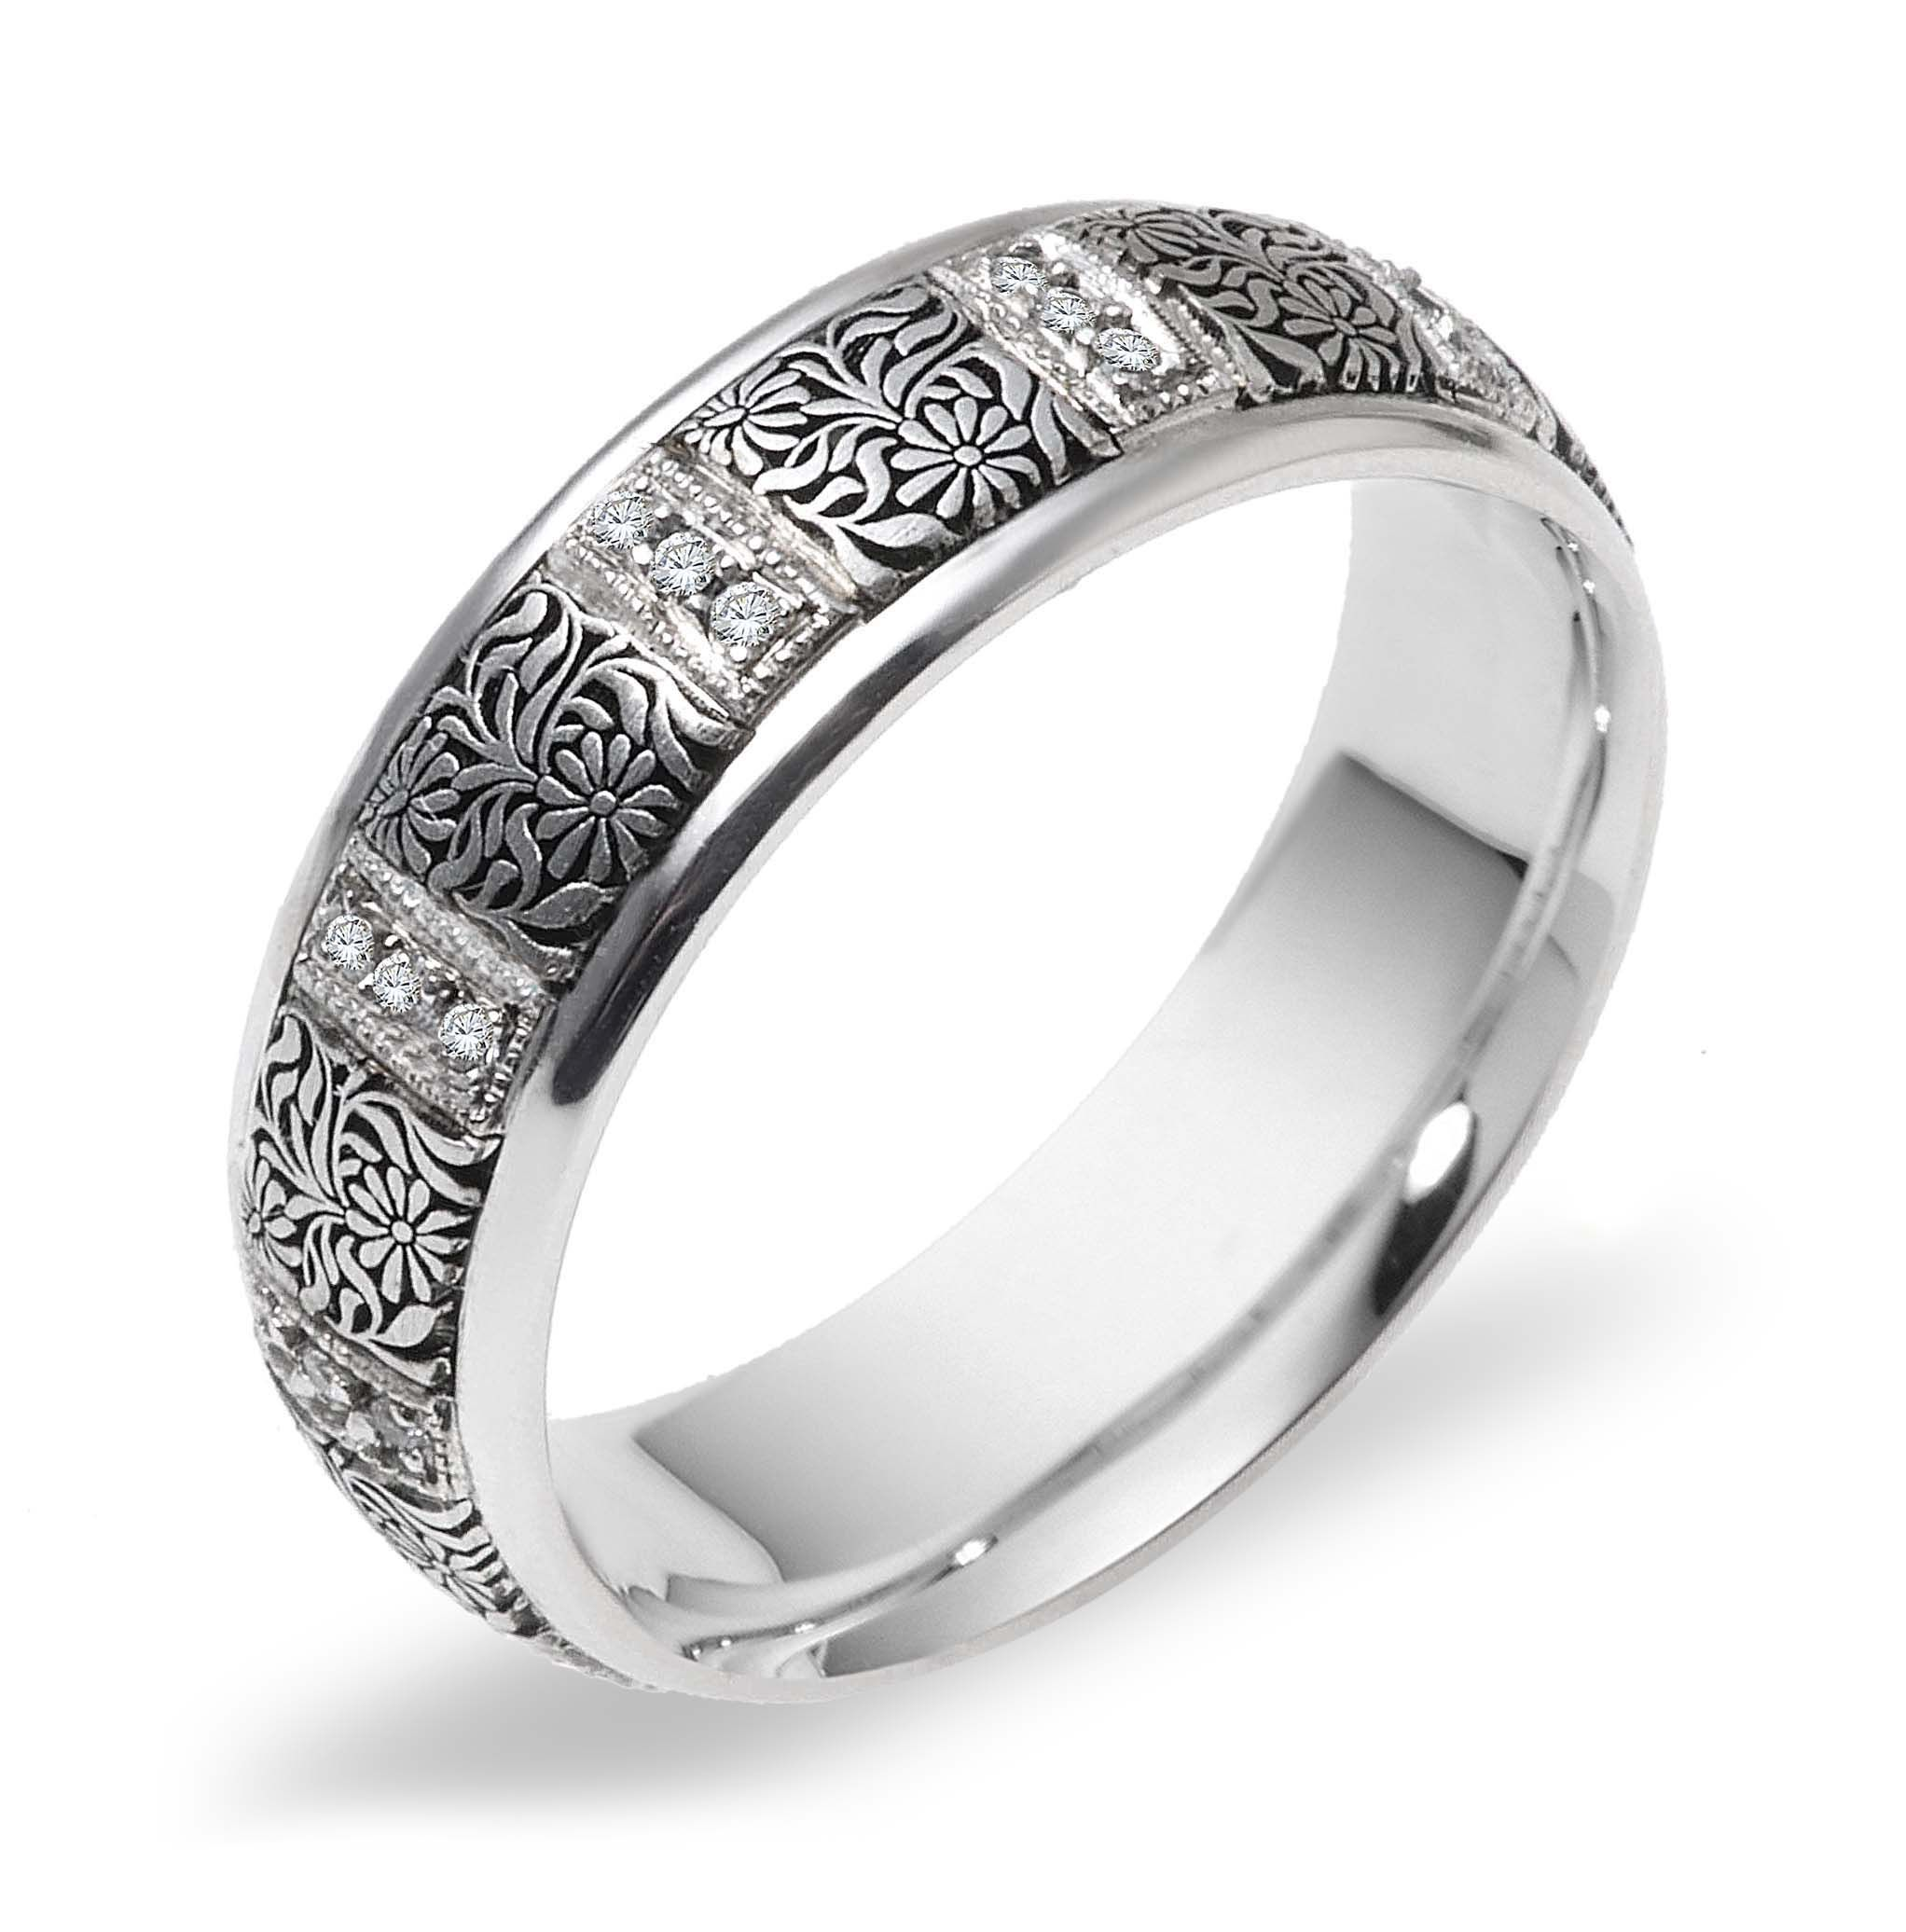 Astonishing lace ring covered with fine art of